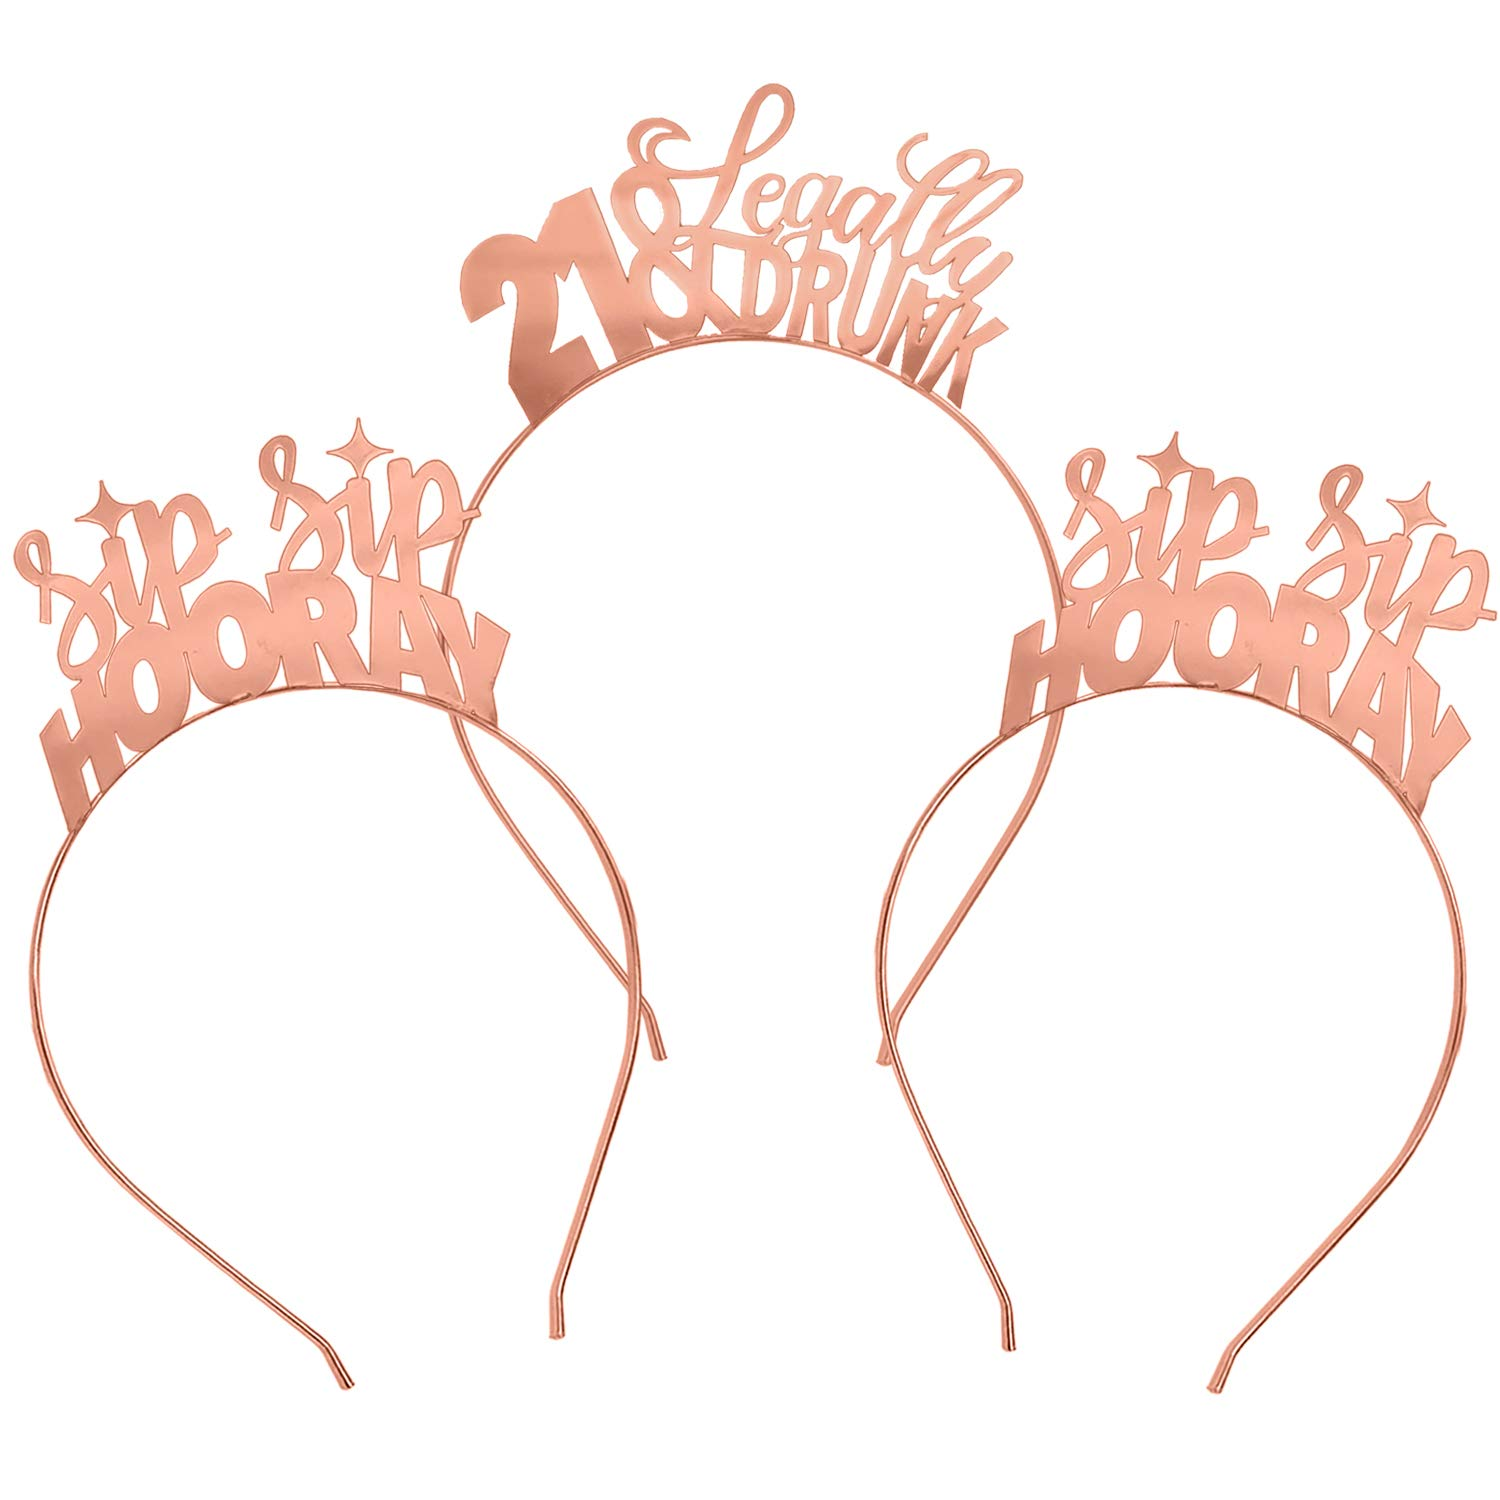 21st Birthday Headband 21 Years Party Tiara 21st Birthday Gifts 21 Birthday Party Accessories Silver//Glitter Pink